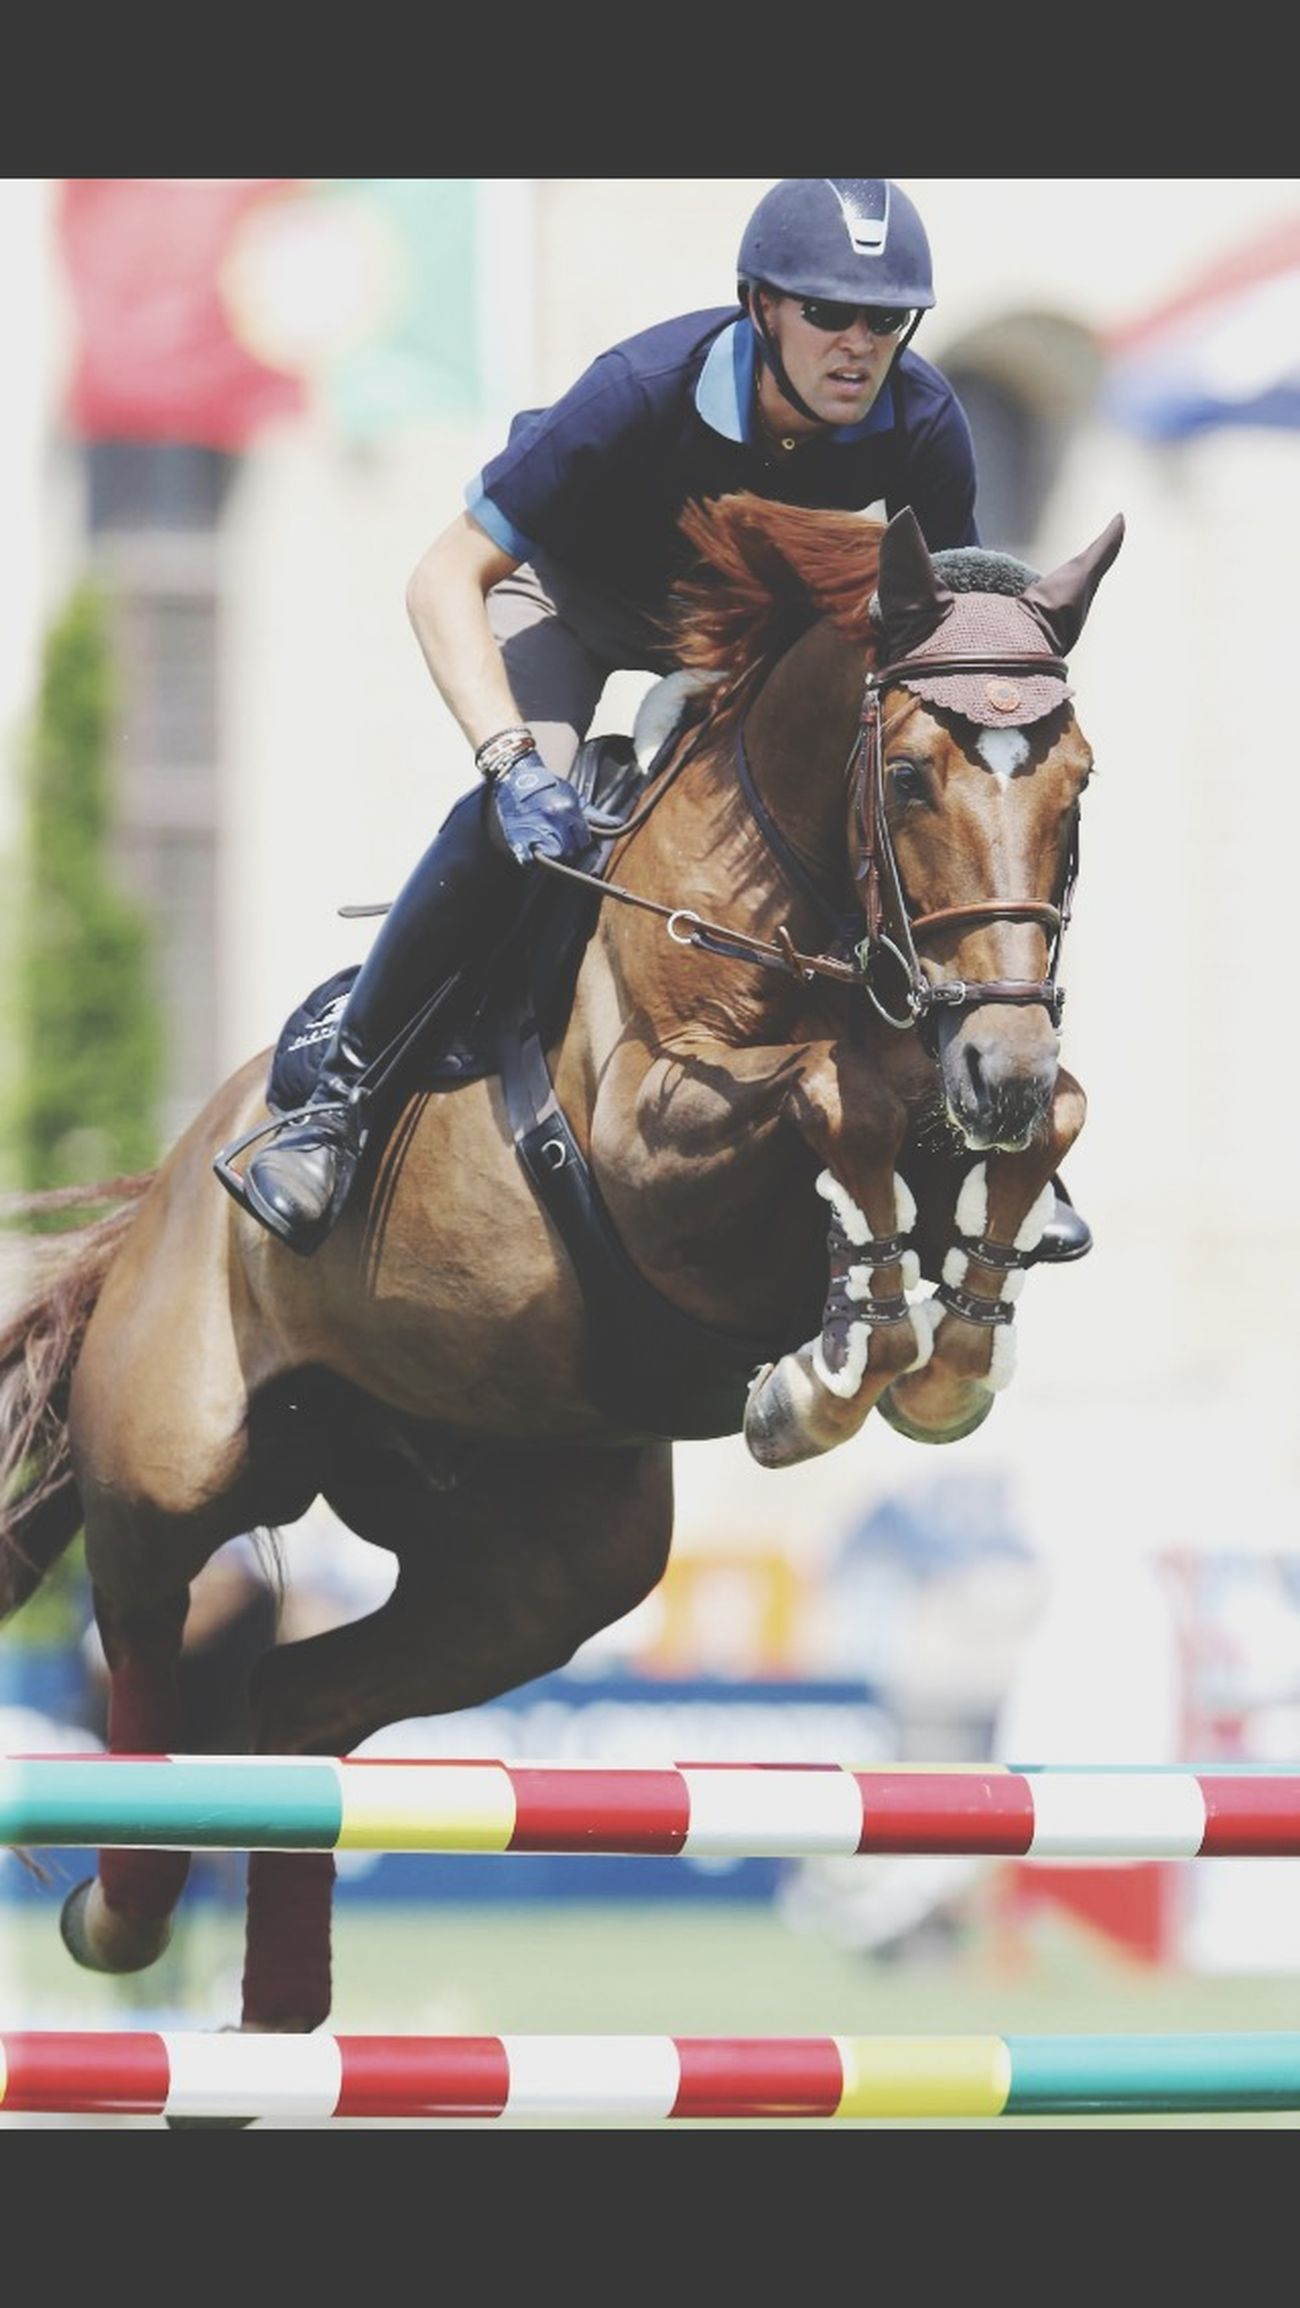 Simon Delestre au Jumping Chantilly juste en face de nous 👌🏻😏😍 Chantilly2015